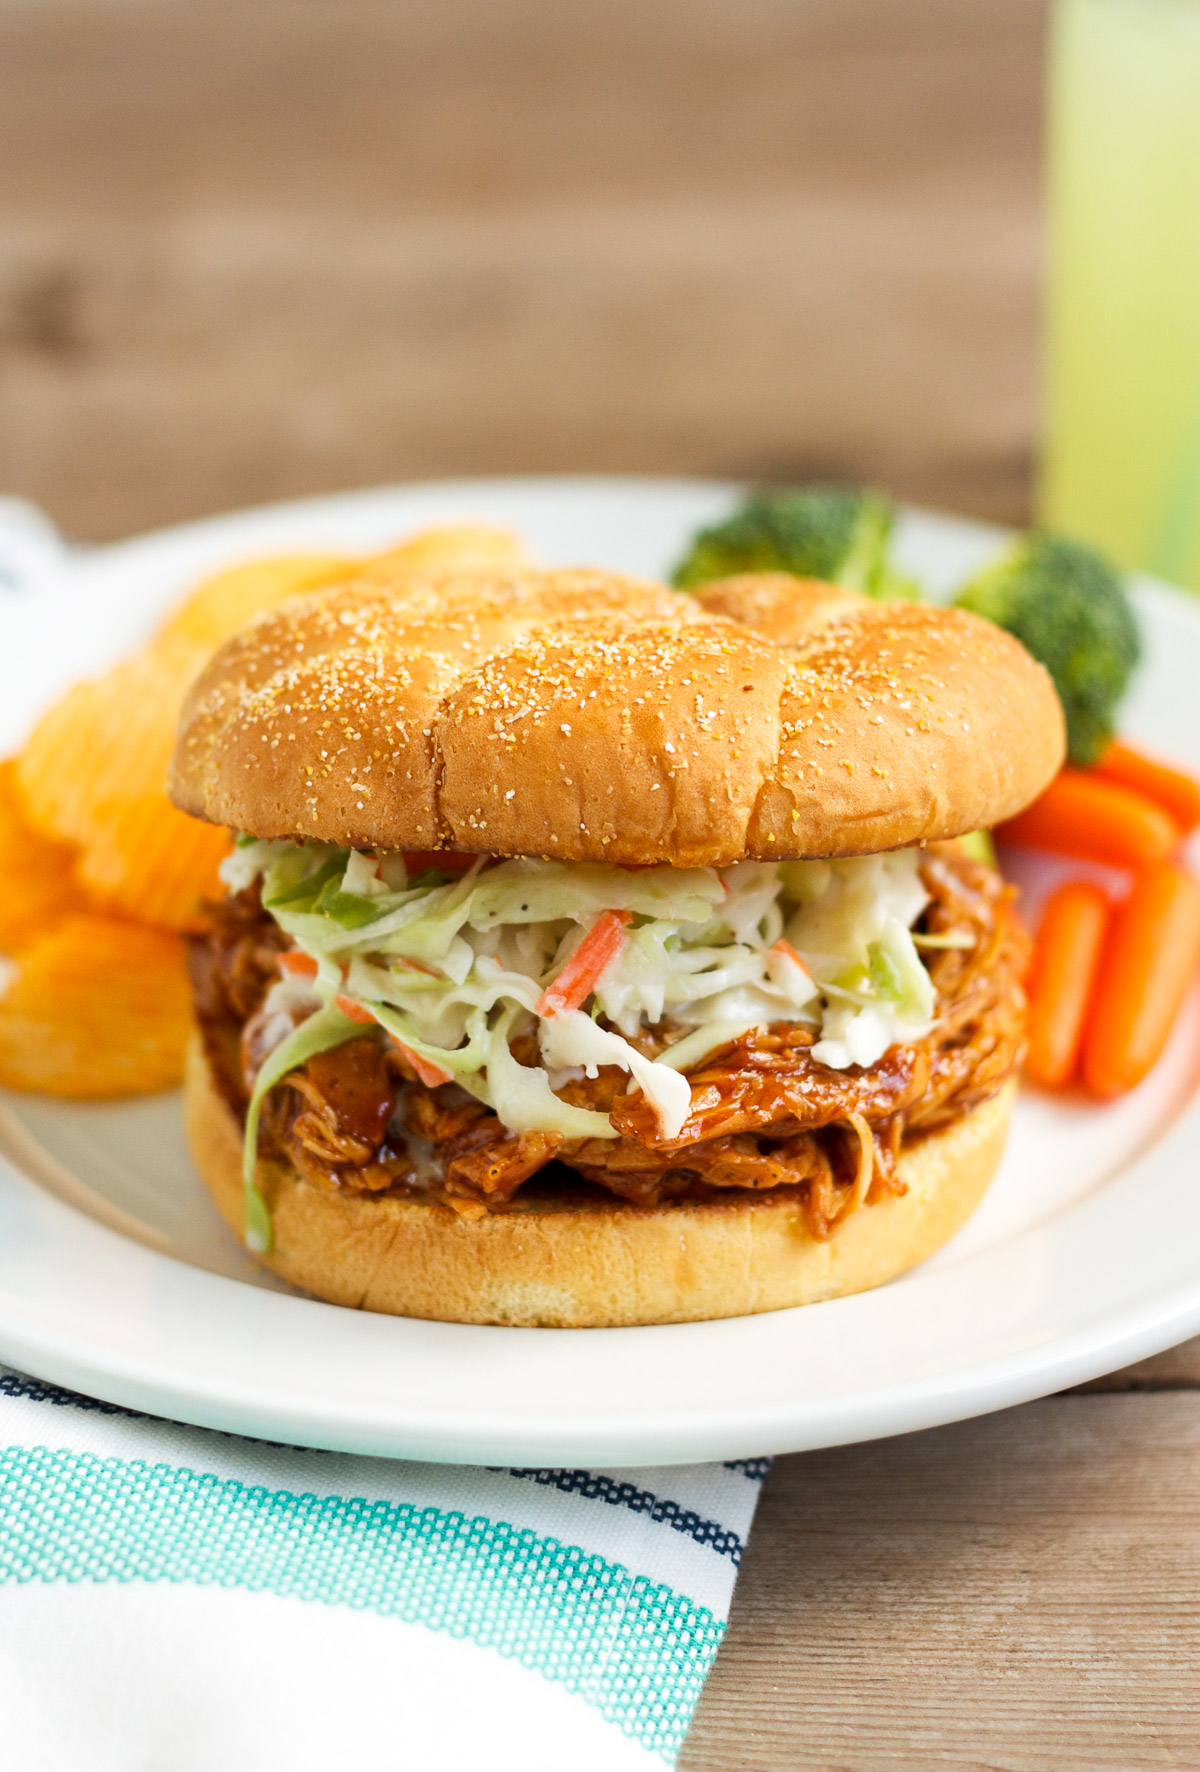 These barbecue chicken sandwiches are served on a buttered, griddled bun, and topped with creamy, homemade cole slaw. You'll want to eat them every week!